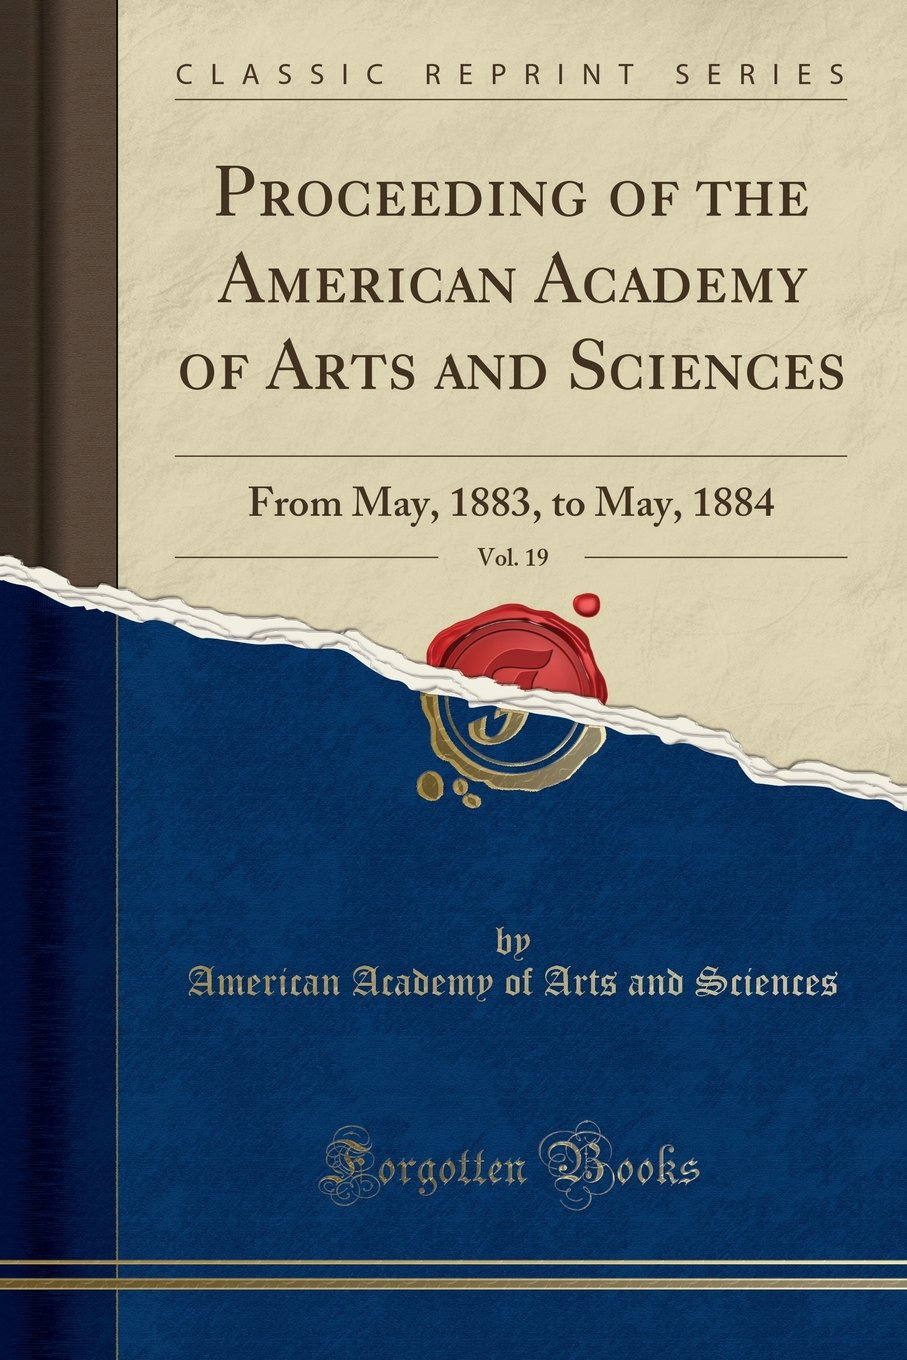 Proceeding of the American Academy of Arts and Sciences, Vol. 19: From May, 1883, to May, 1884 (Classic Reprint) ebook